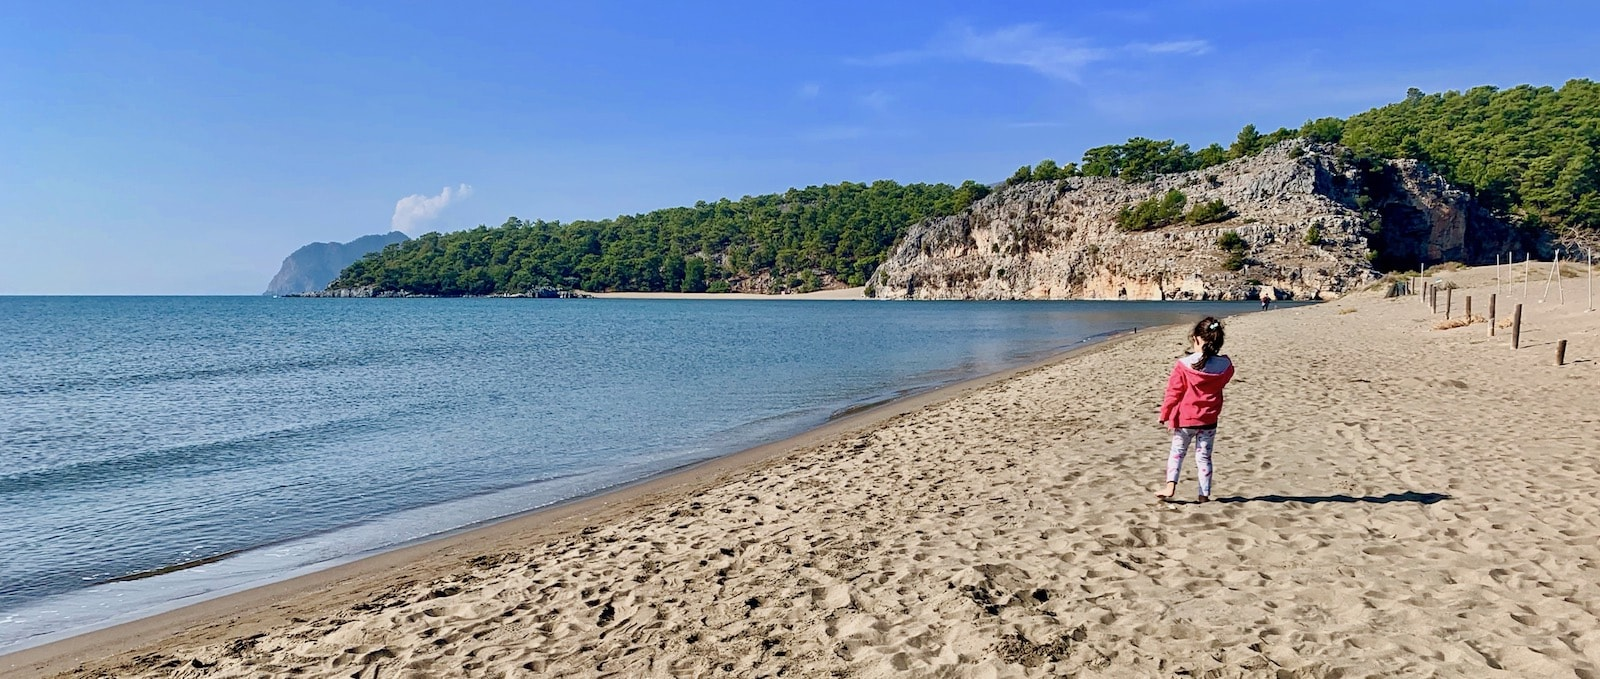 iztuzu beach dalyan turkey